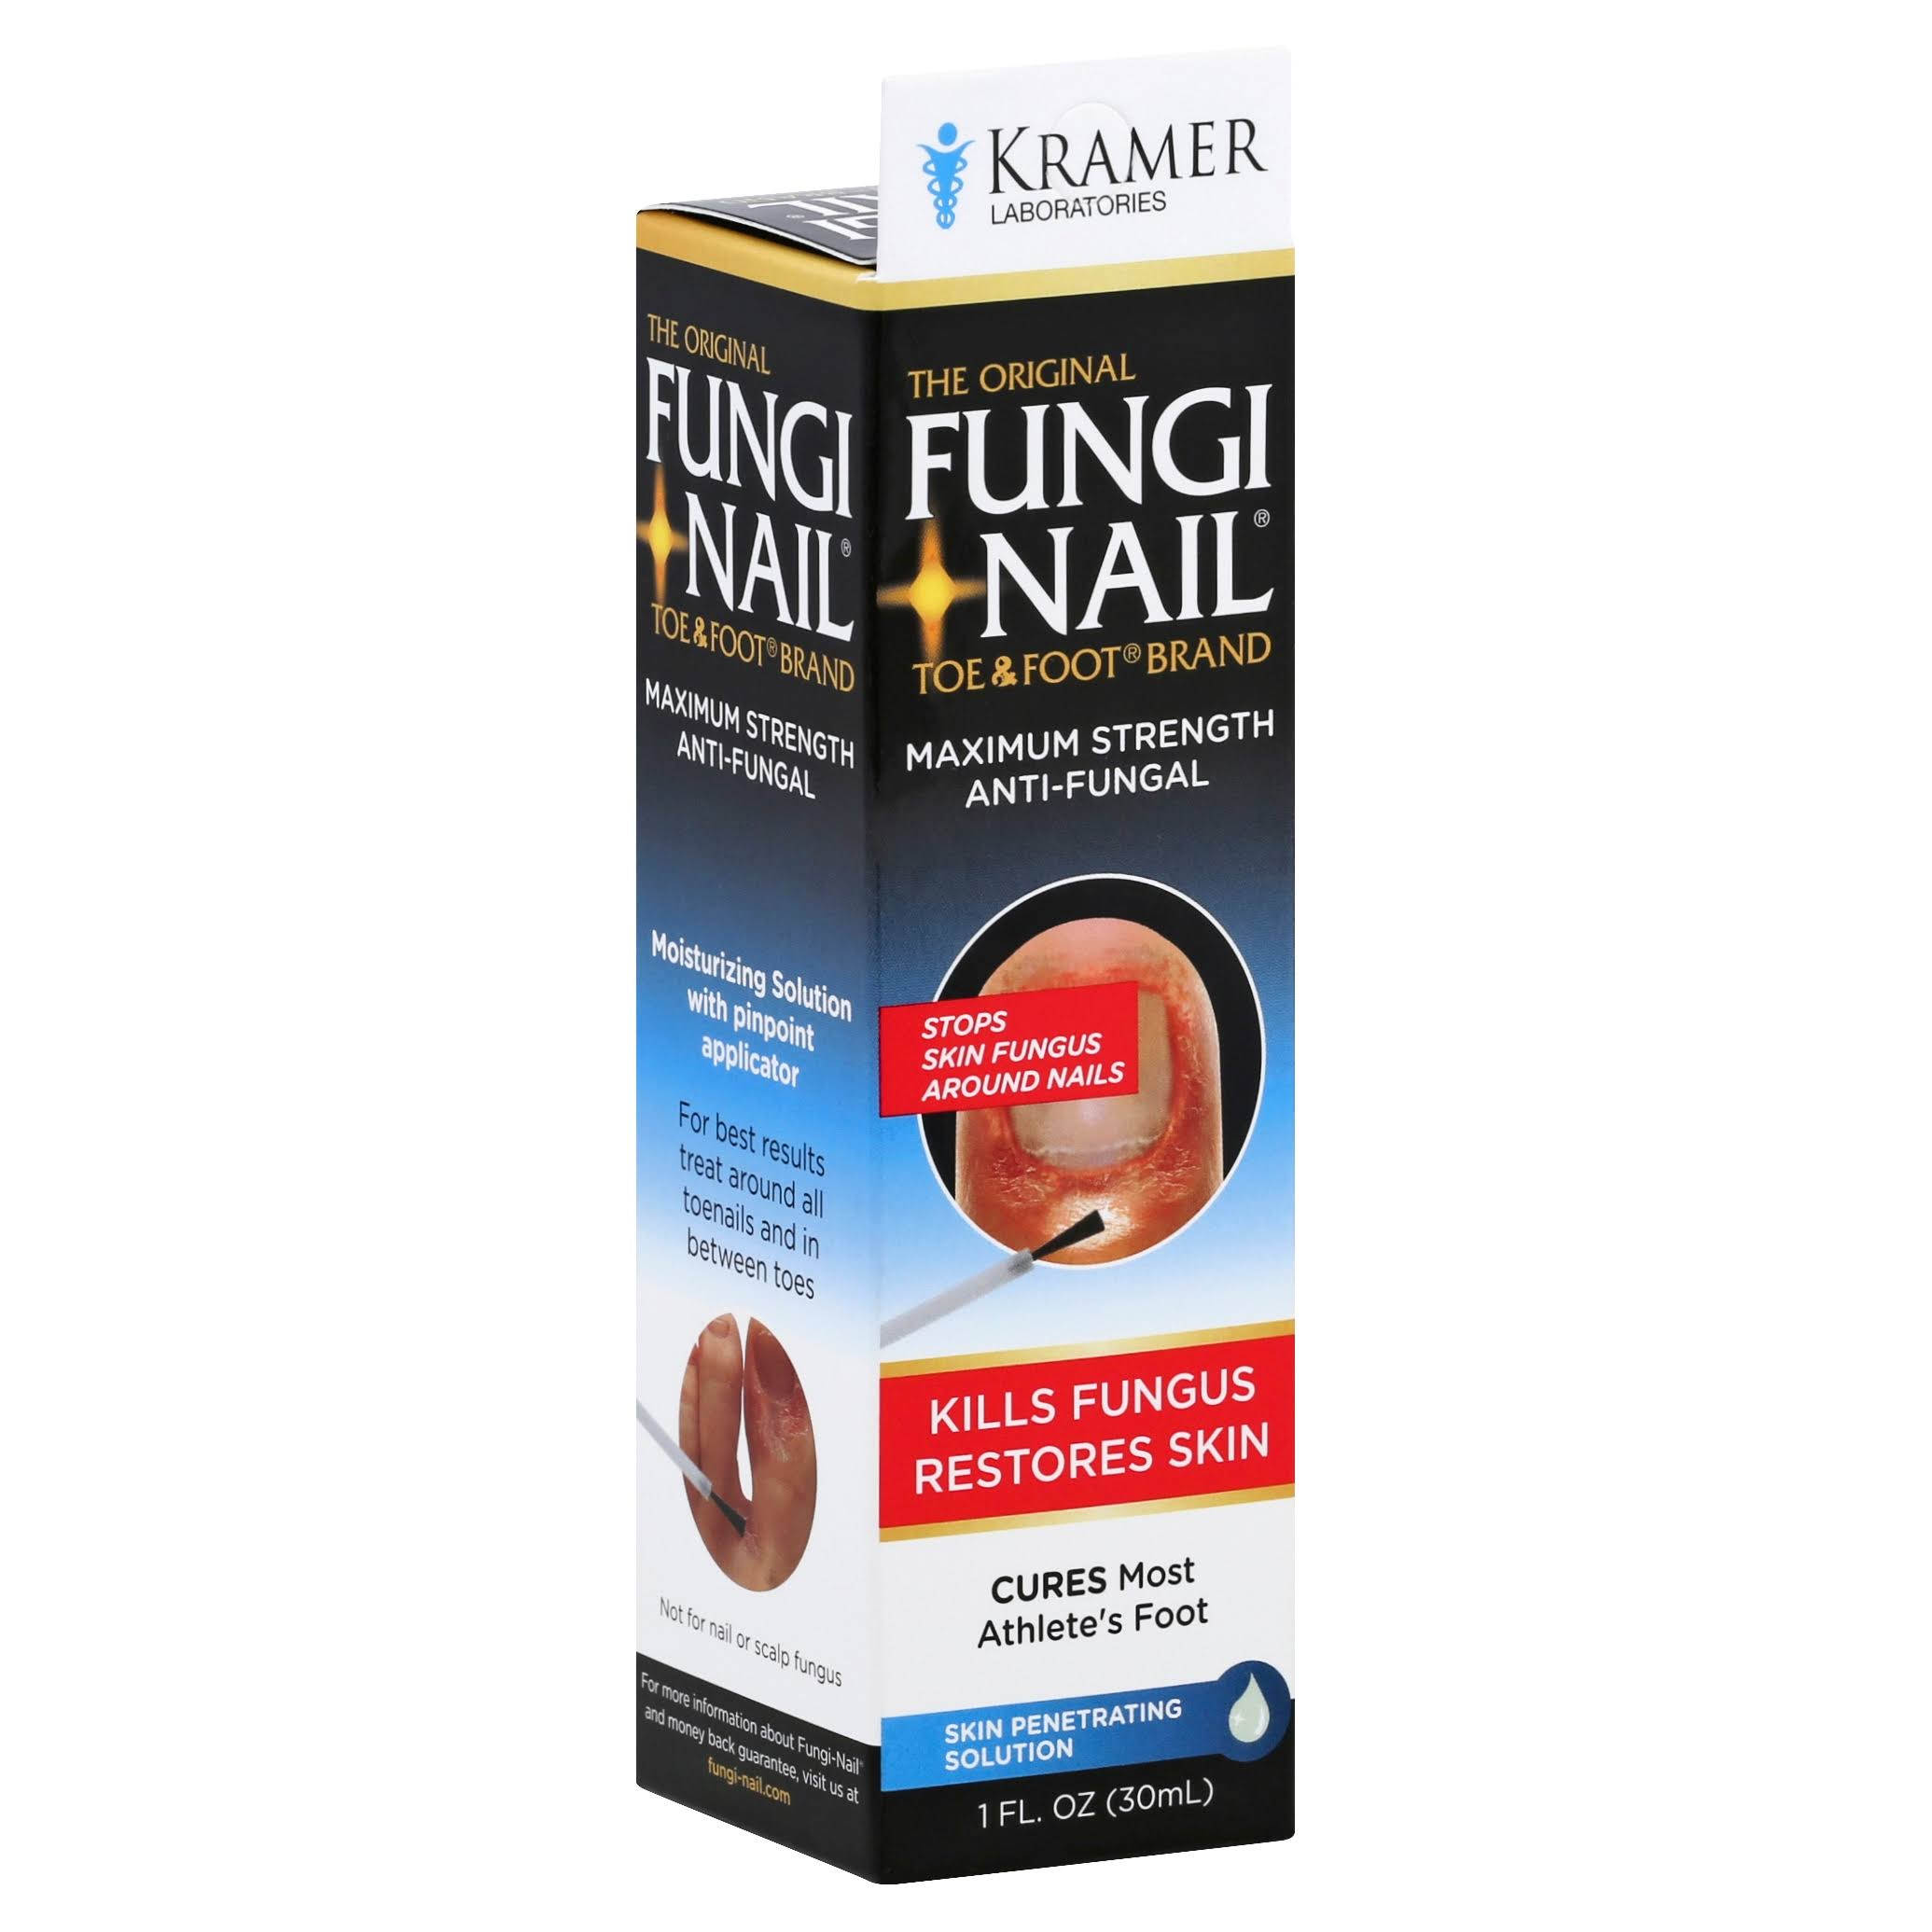 Fungi Nail Anti-Fungal, Maximum Strength, Skin Penetrating Lotion - 1 fl oz